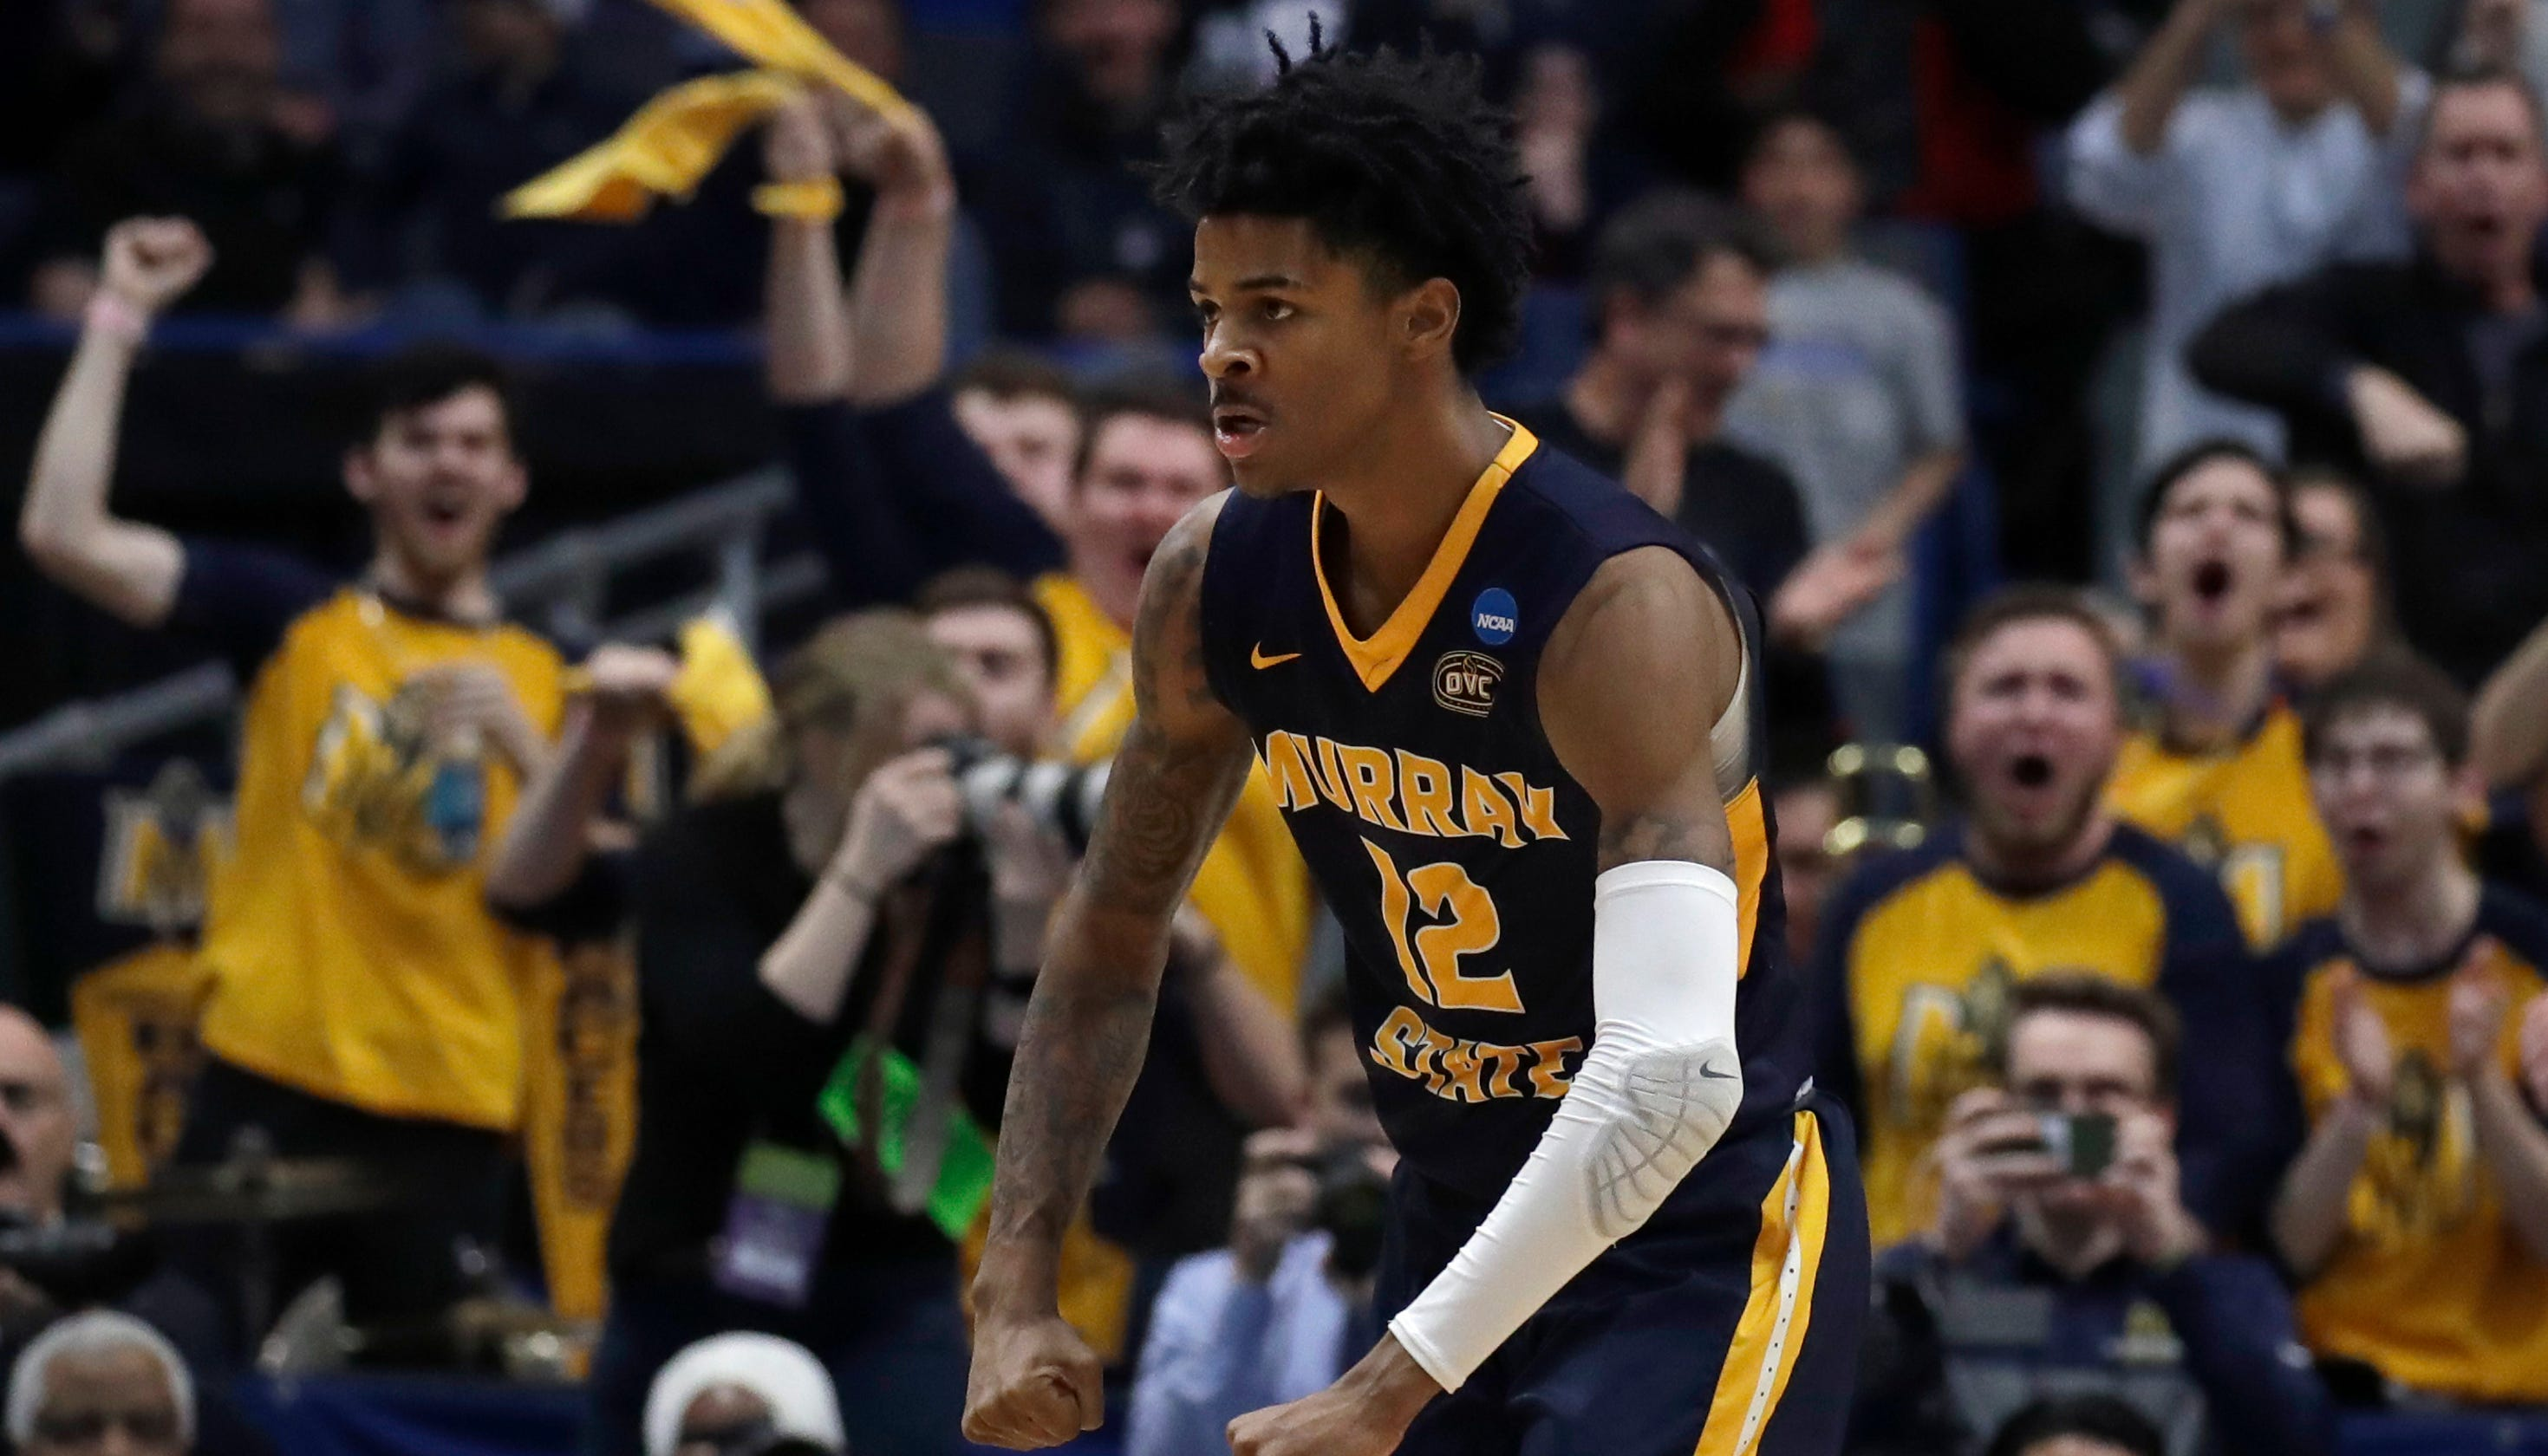 NBA Draft 2019: Ja Morant of Murray State picked by Memphis